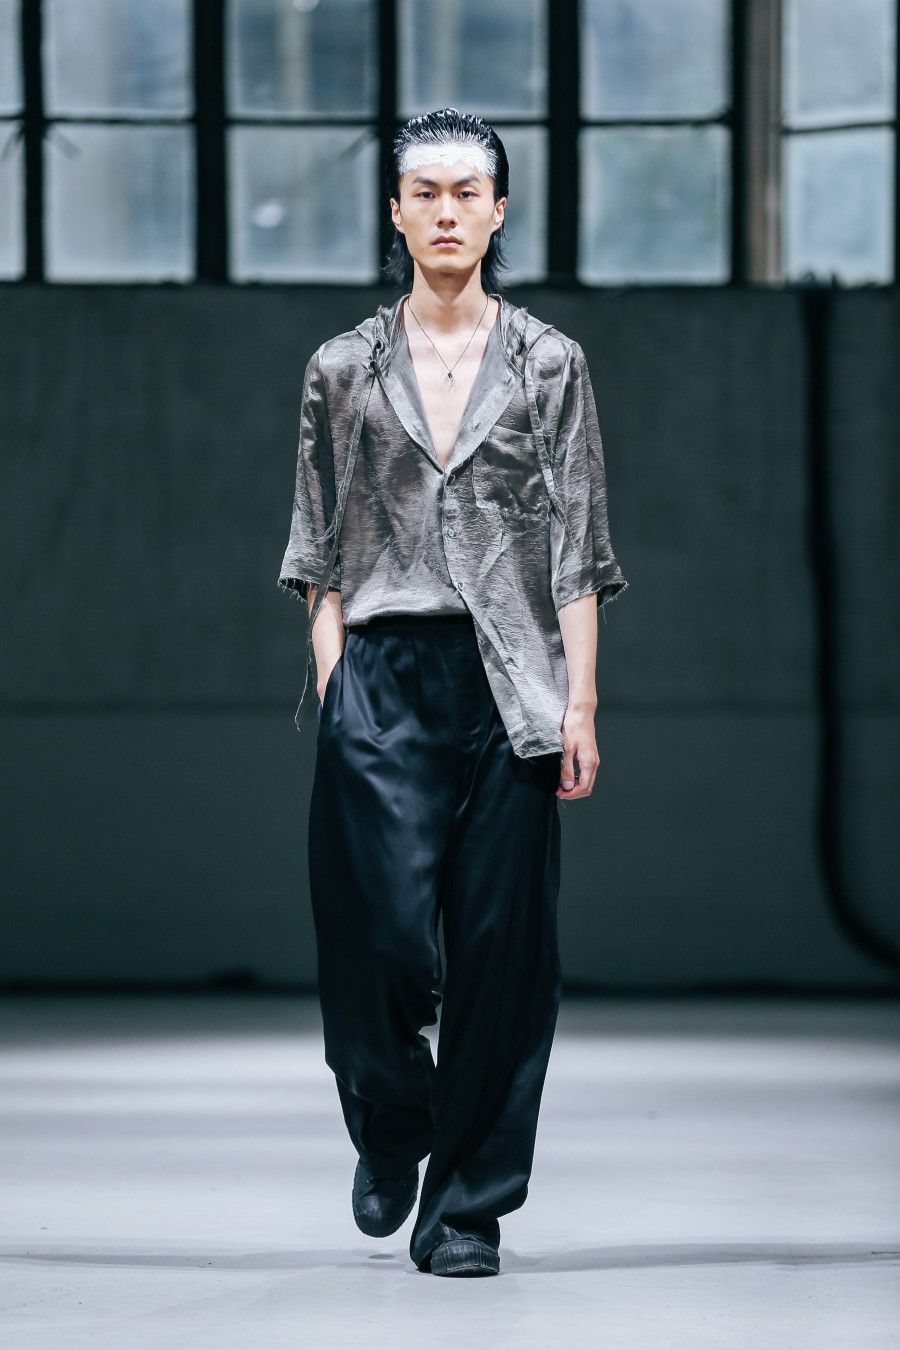 DANSHAN - Printemps-Été 2020 - Shanghai Fashion Week